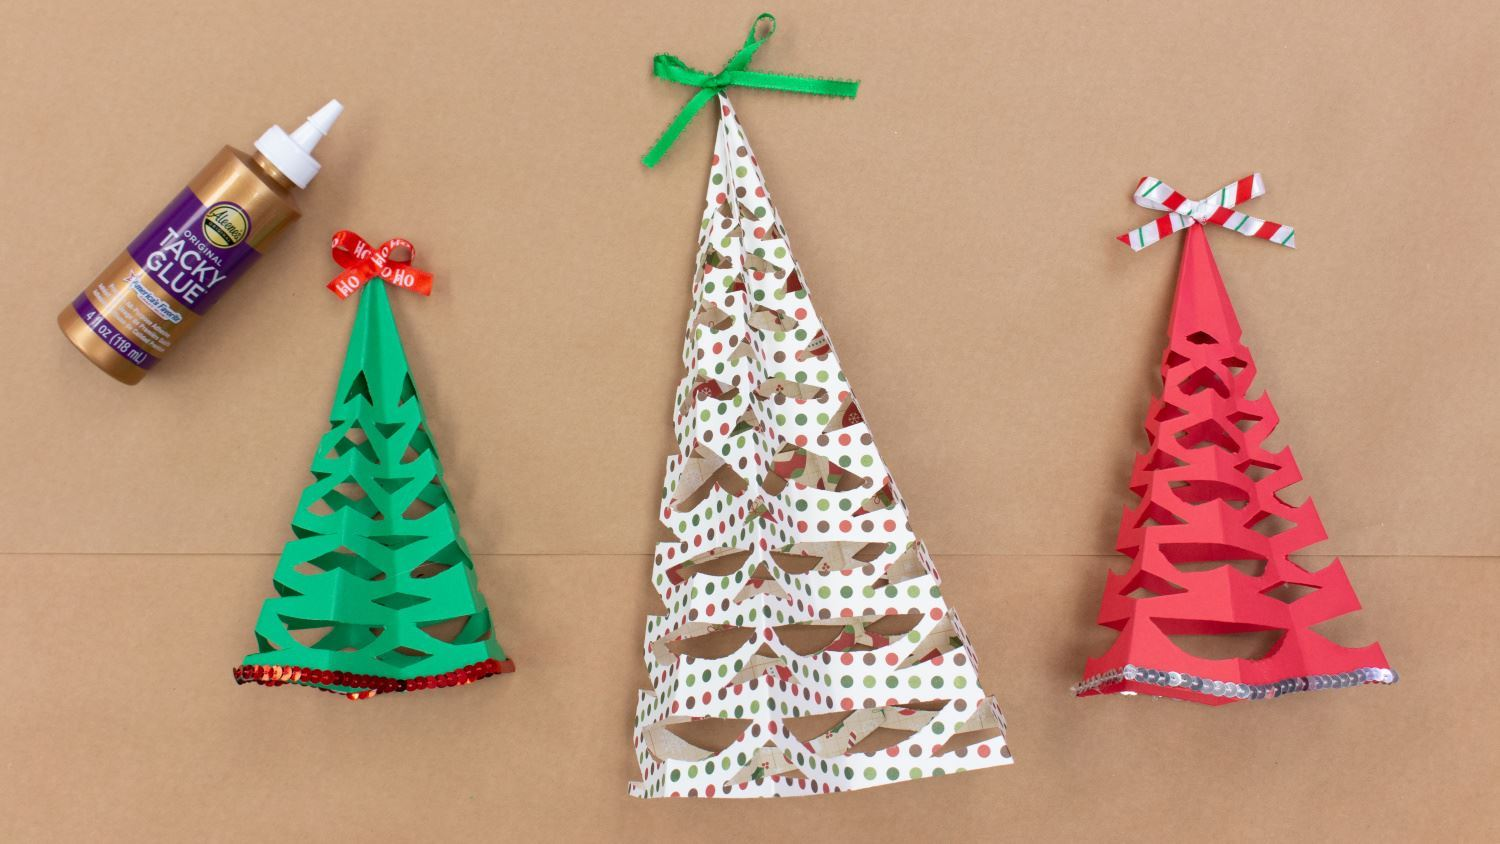 Create more paper Christmas trees